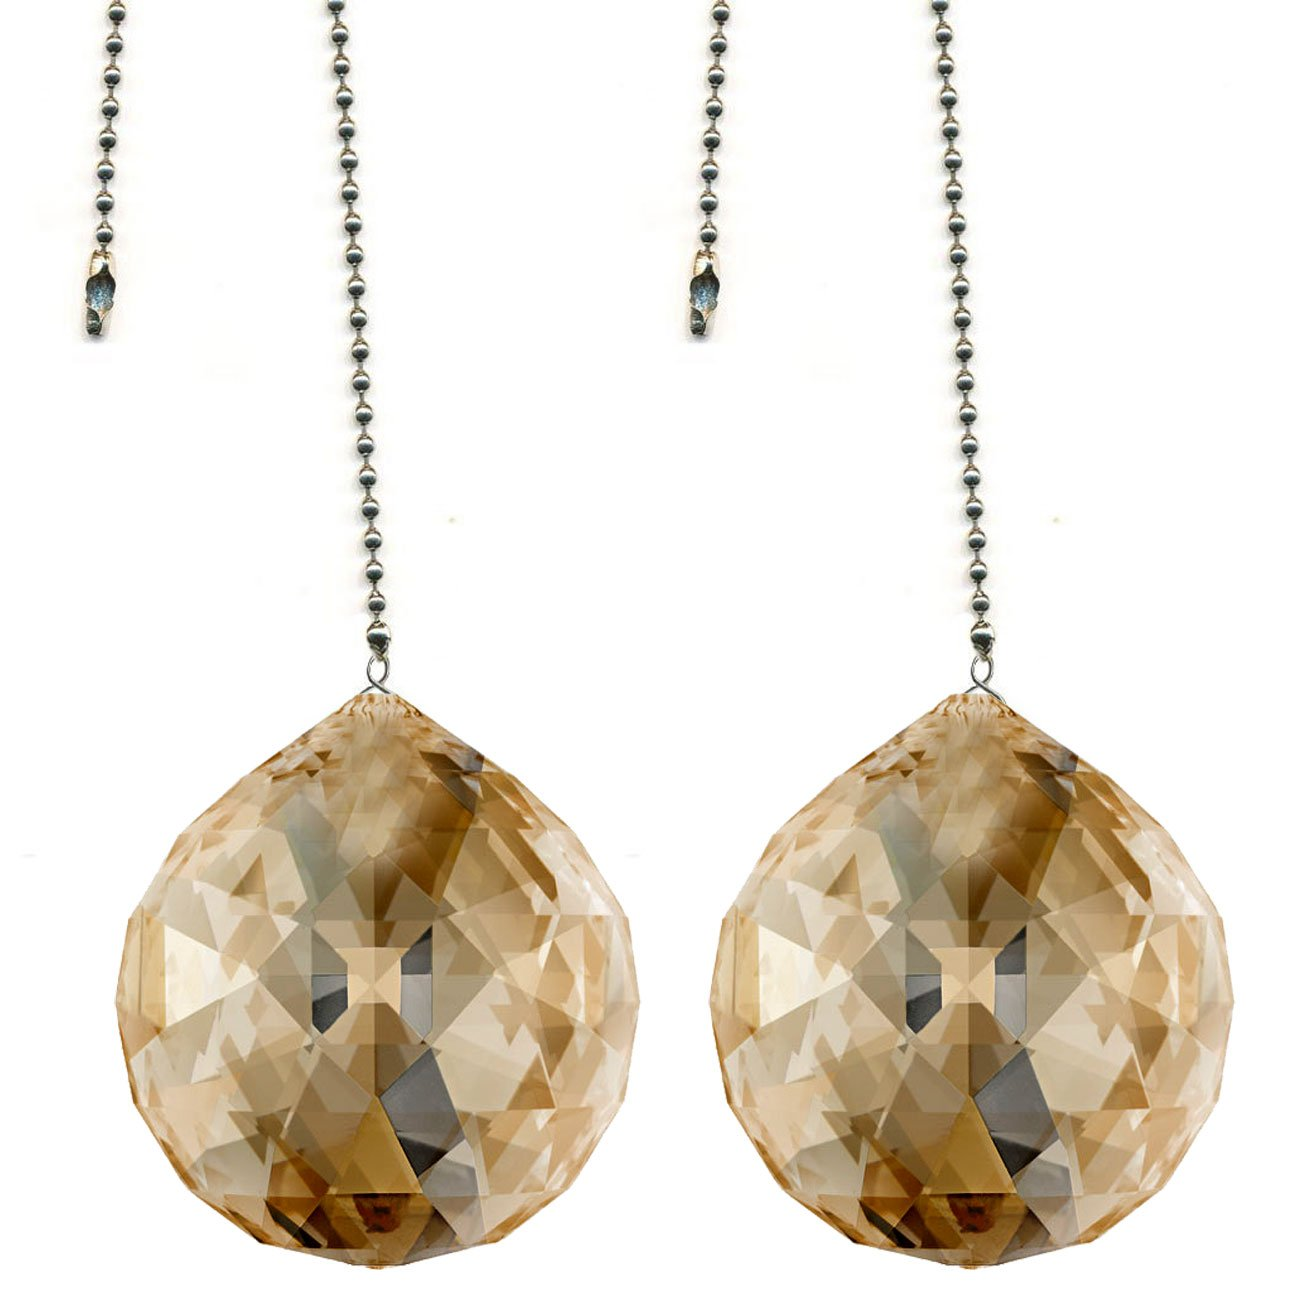 CrystalPlace Ceiling Fan Pull Chain 30mm Swarovski Strass Golden Teak Faceted Ball Prism Fan Pulley Set of 2